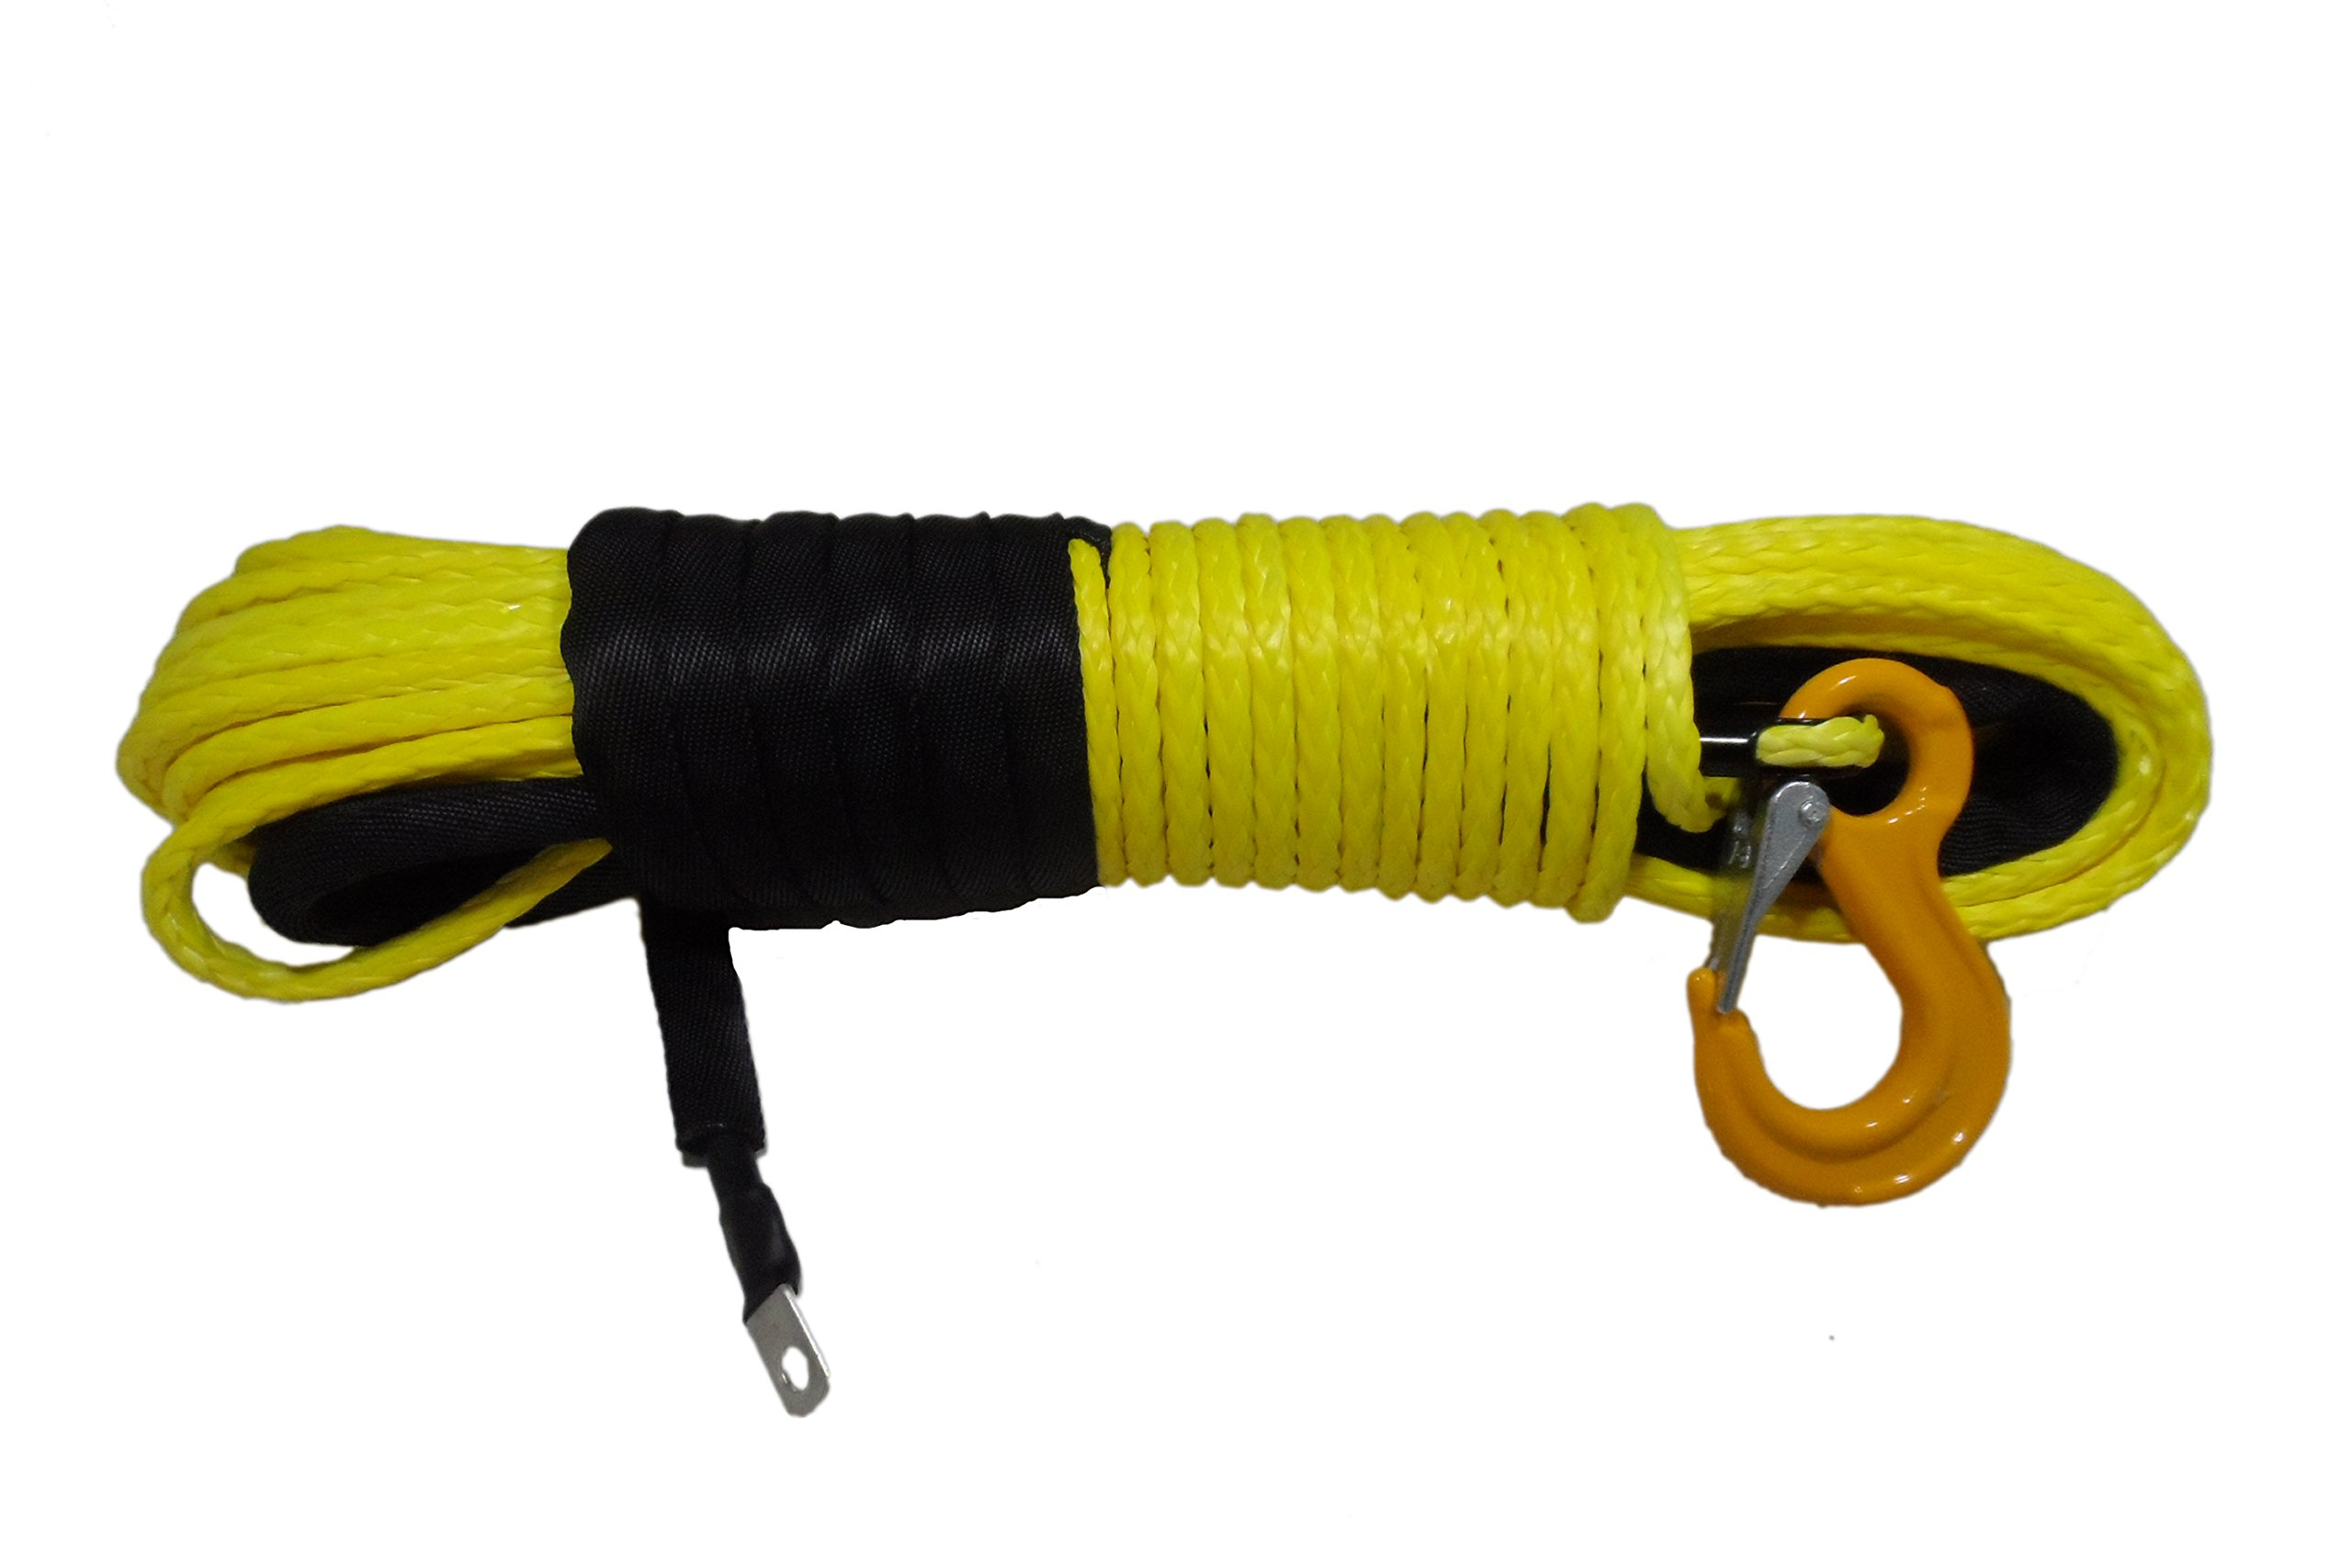 California Cordage 5/16'' x 50' Yellow DynaTech UHMWPE Winch Rope with G80 Forged Hook